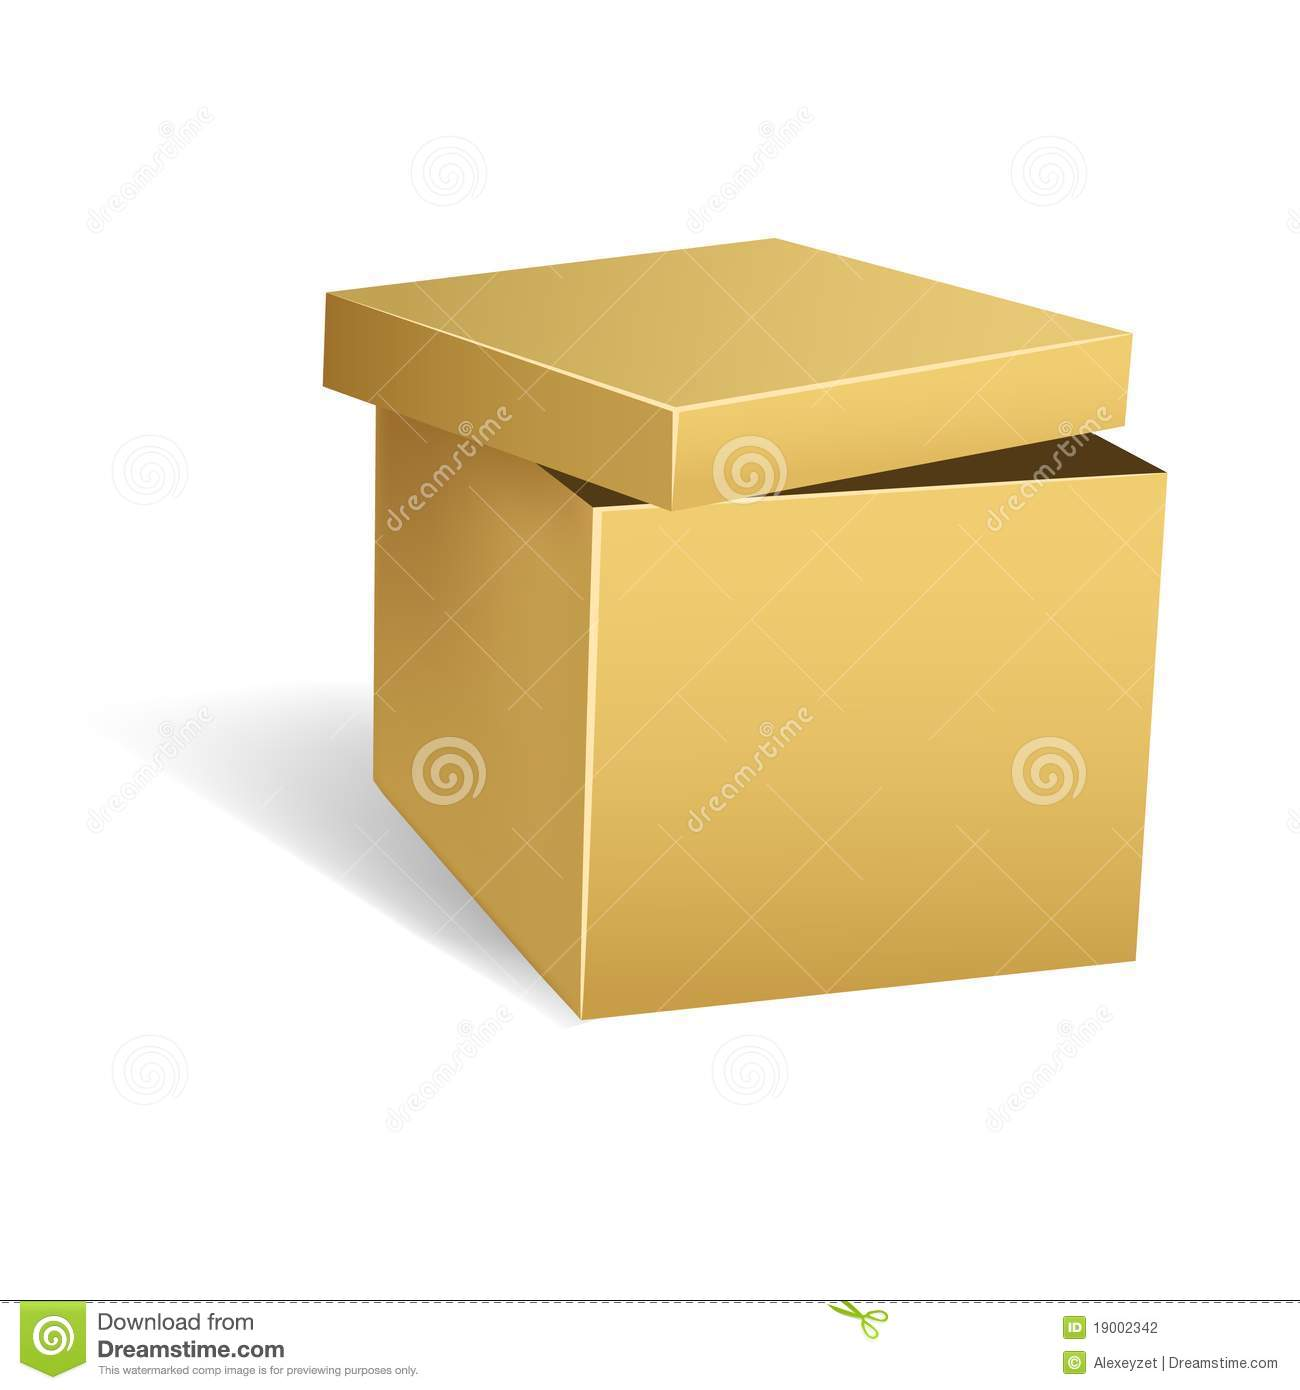 Cardboard Box With Opened Lid Stock Photography - Image: 19002342